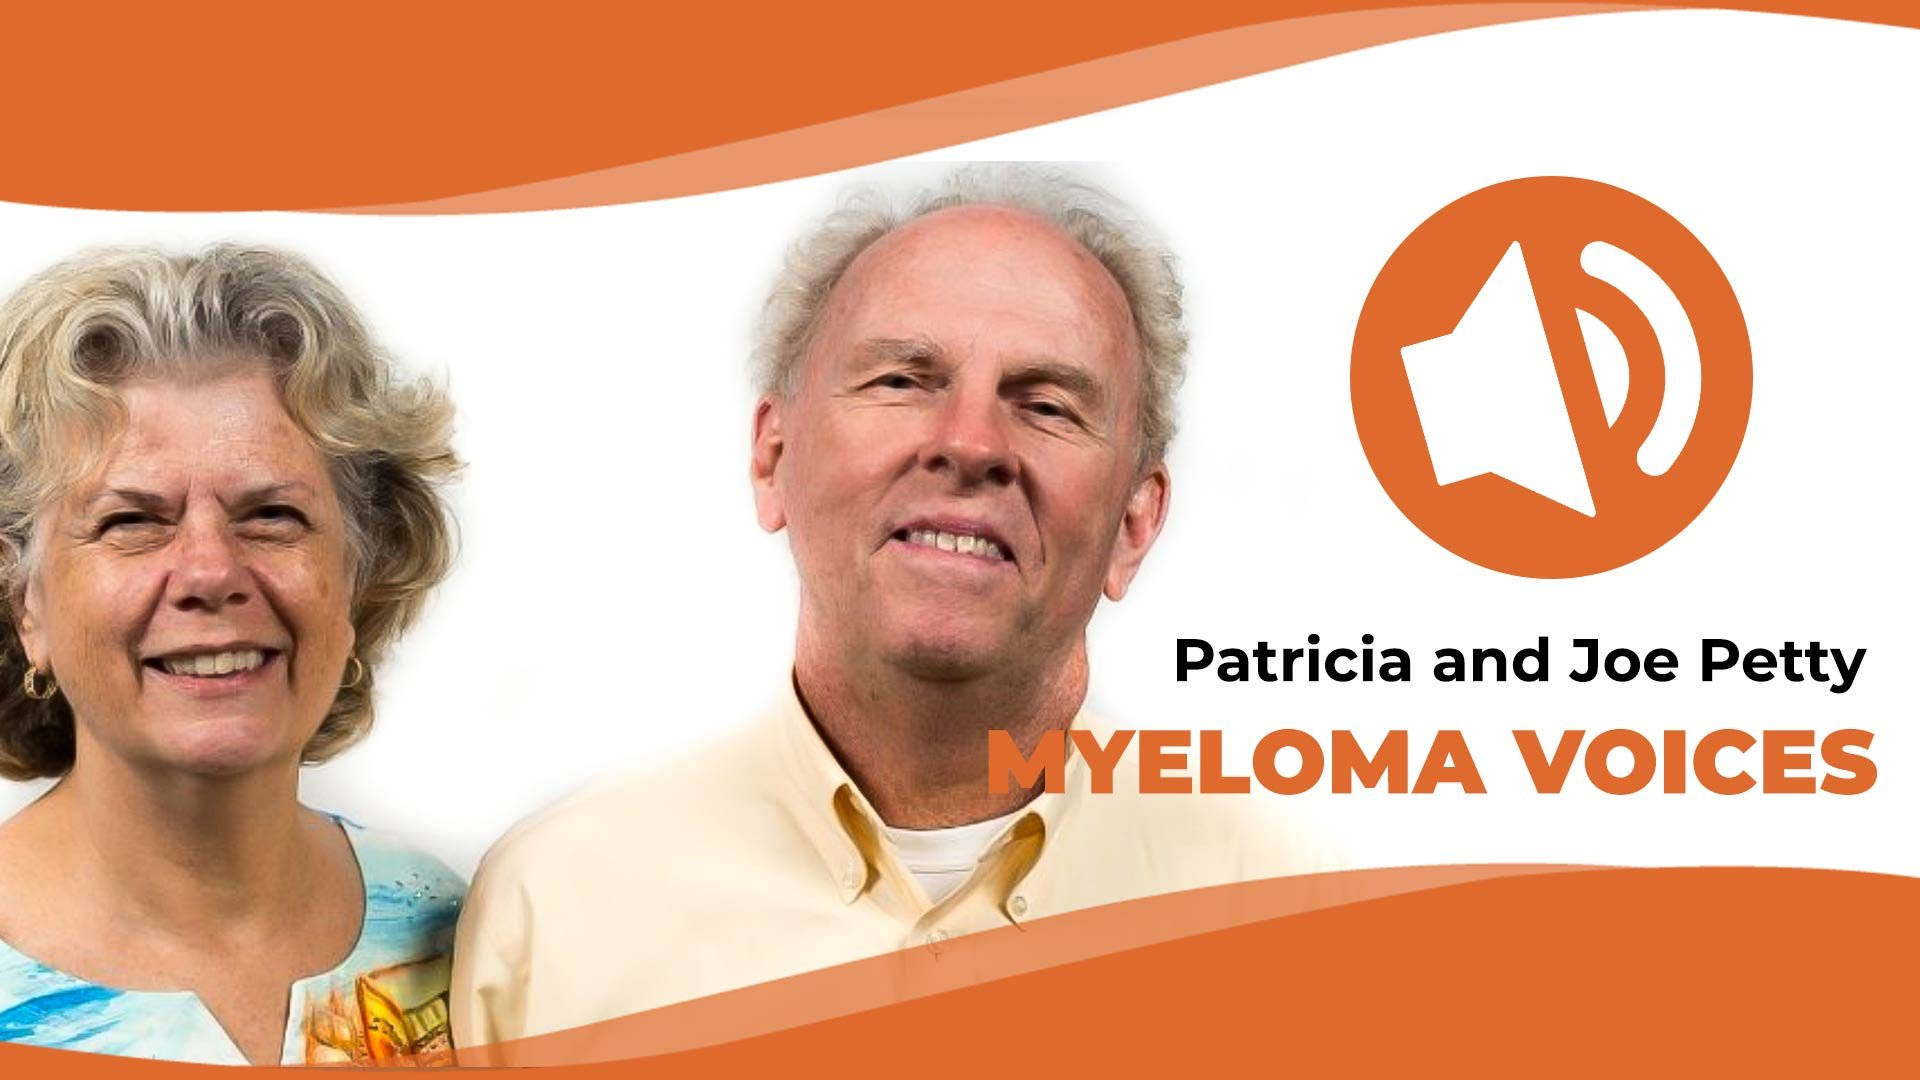 """Patricia and Joe Petty interviewed on the IMF's """"Myeloma Voices"""" series"""